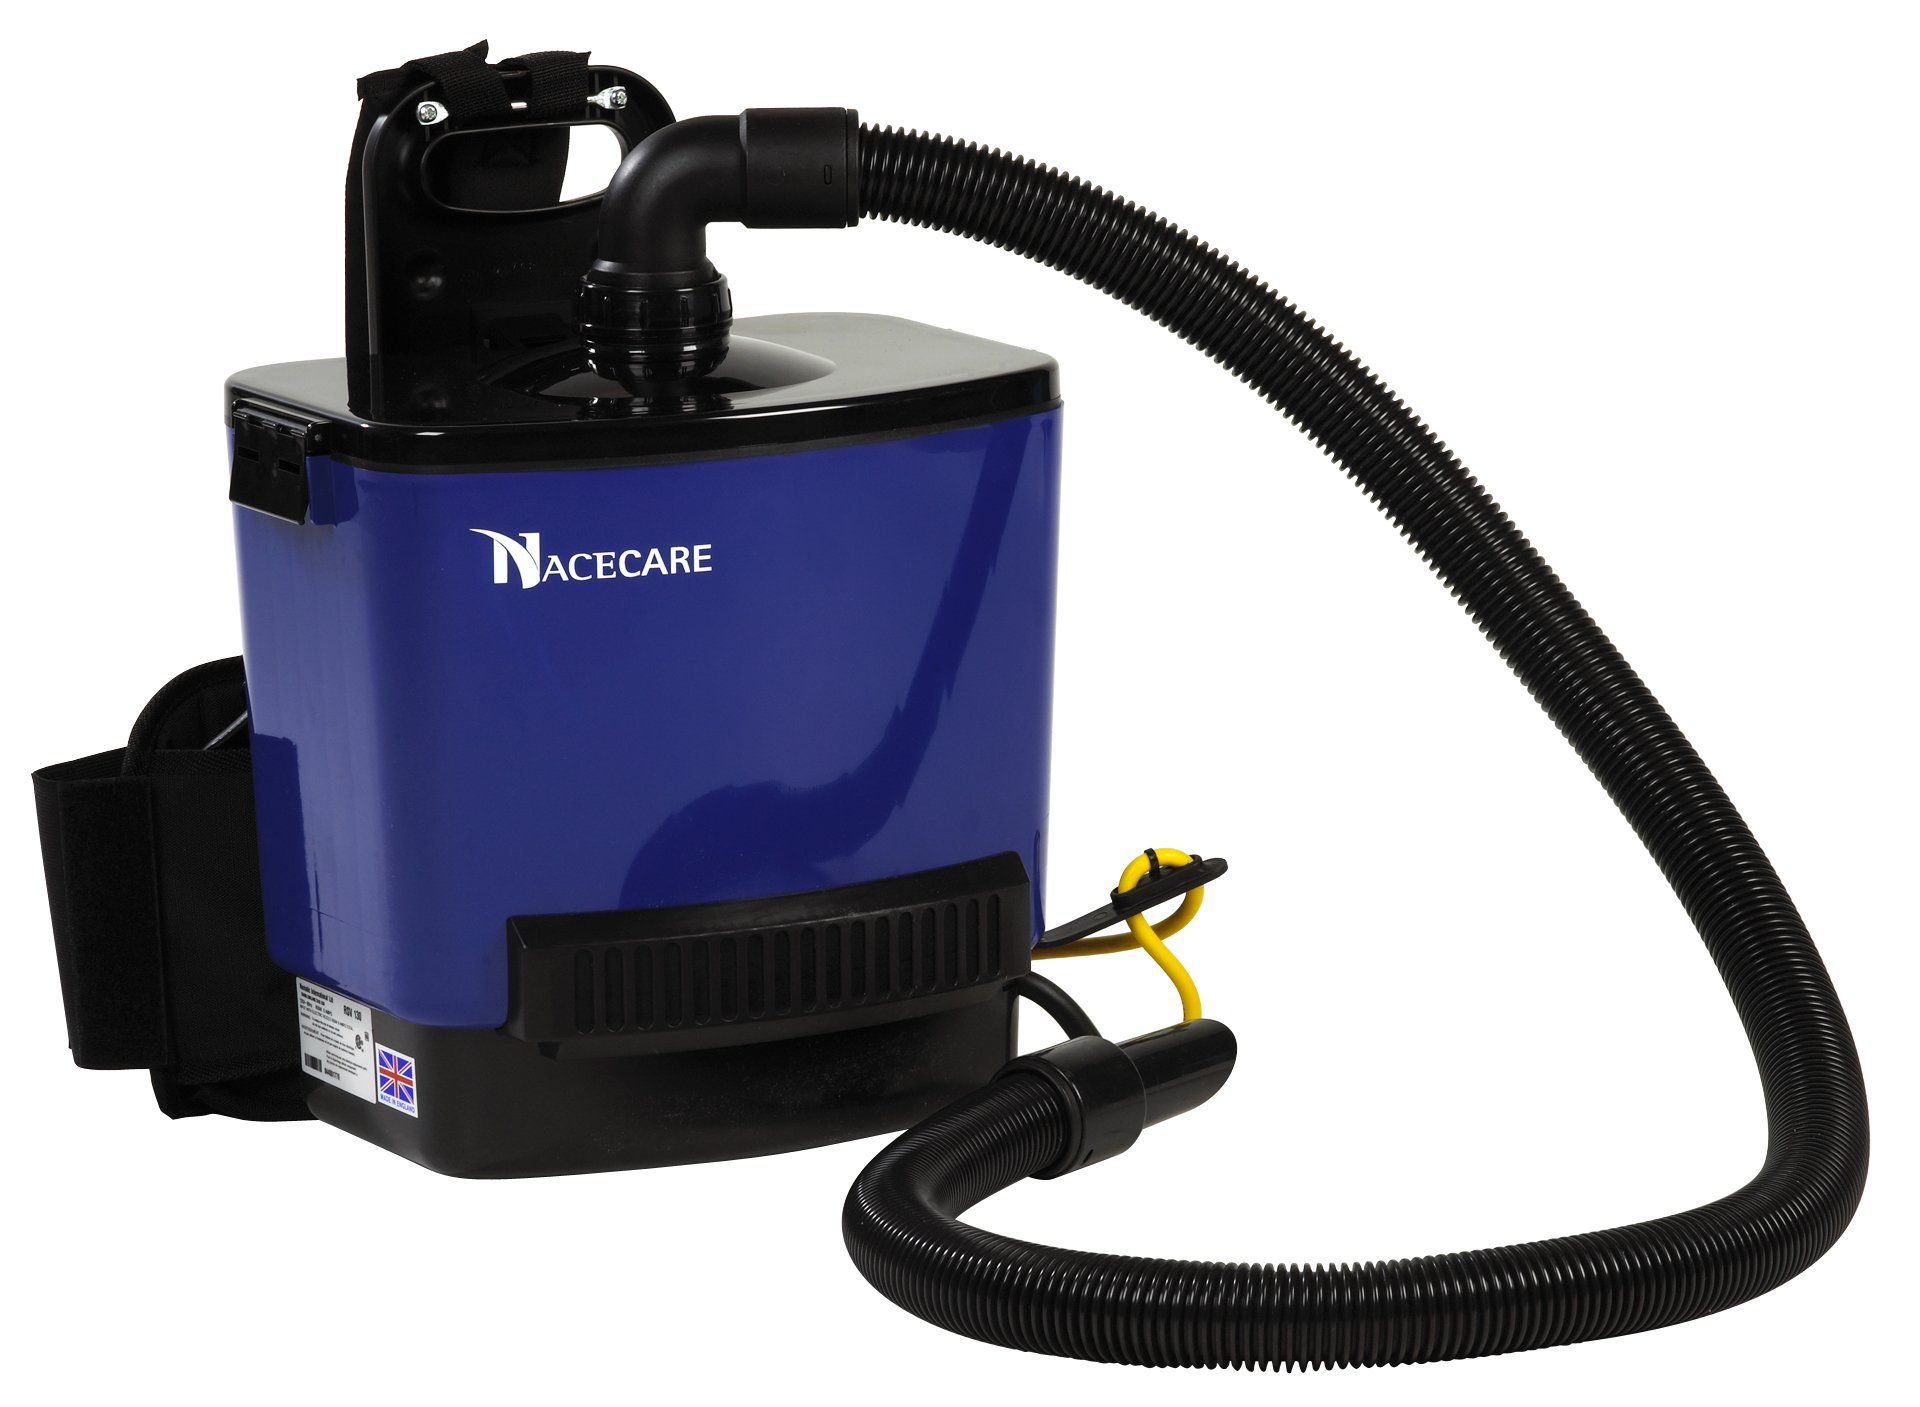 NaceCare RSV130 Back Pack Vacuum, 1.5 Gallon Capacity, 1.6HP, 114 CFM Airflow, 42' Power Cord Length